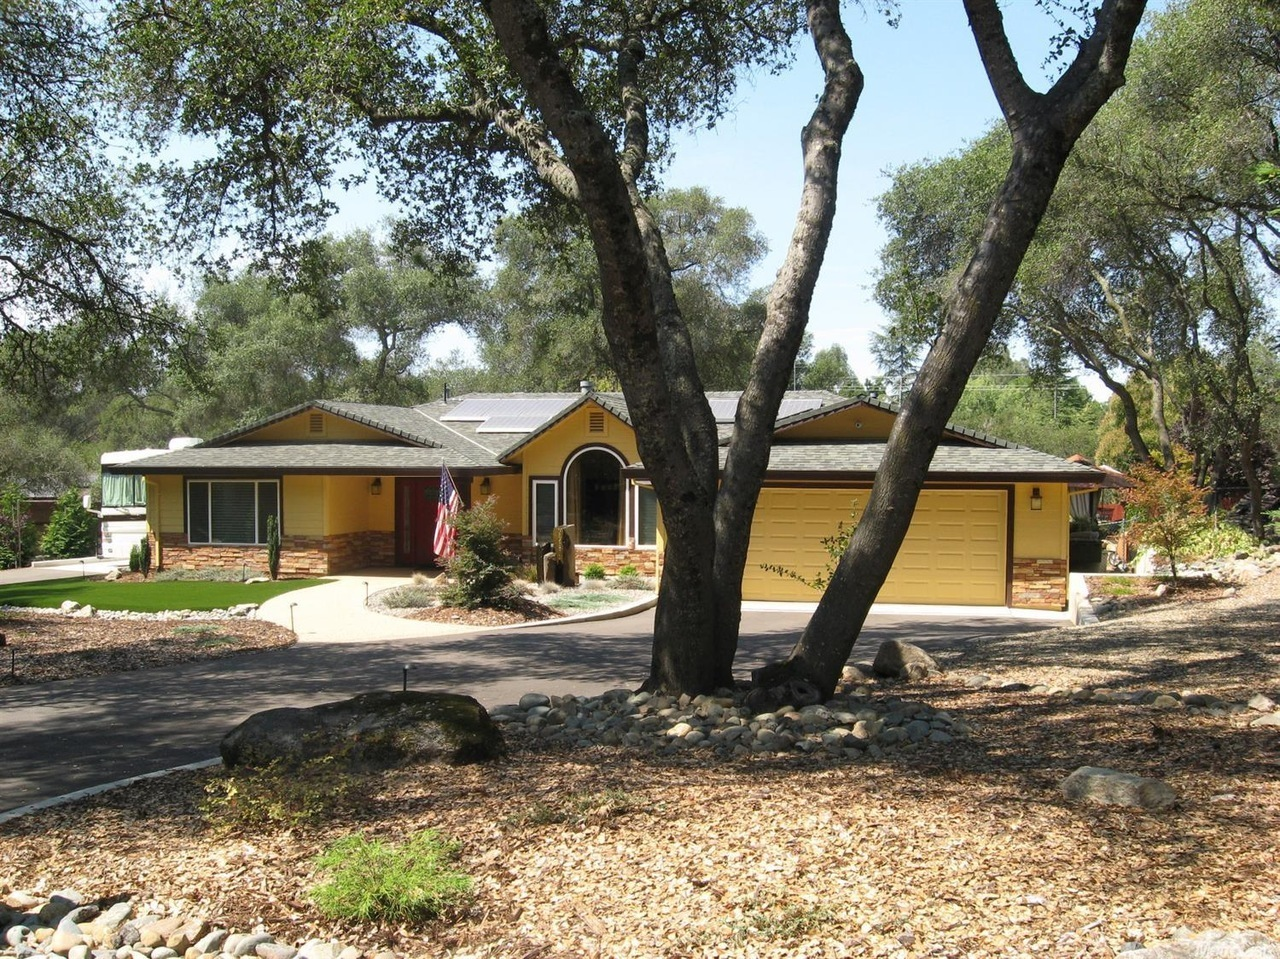 granite bay chat Browse granite bay ca real estate listings to find homes for sale, condos, commercial property, and other granite bay properties.